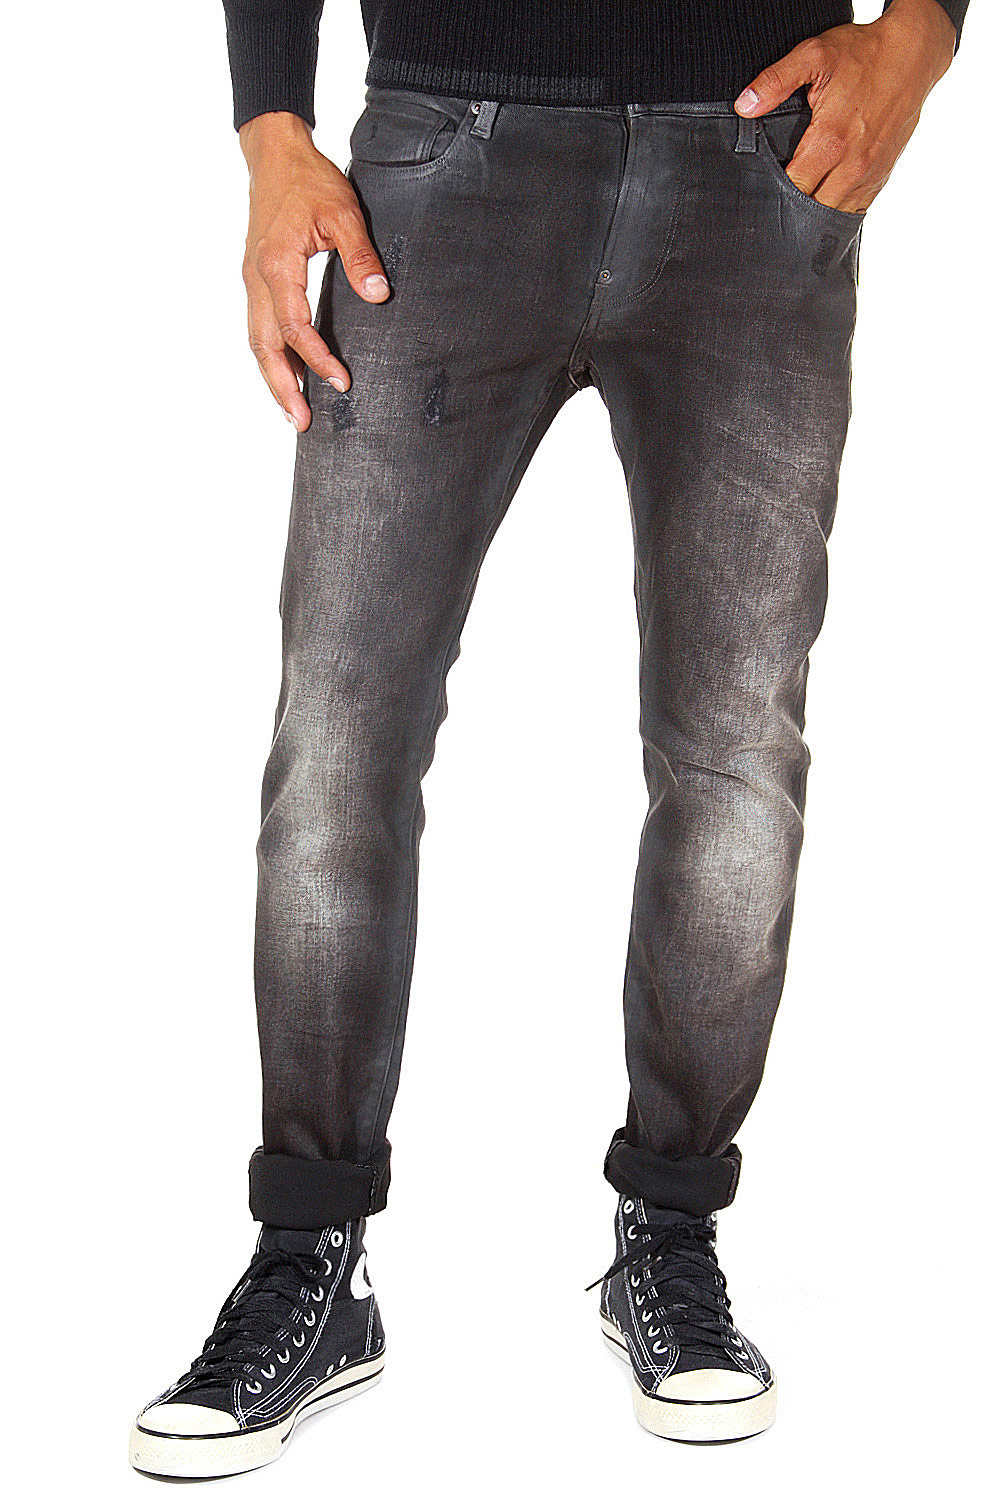 G-STAR REVEND Stretchjeans slim fit auf oboy.de